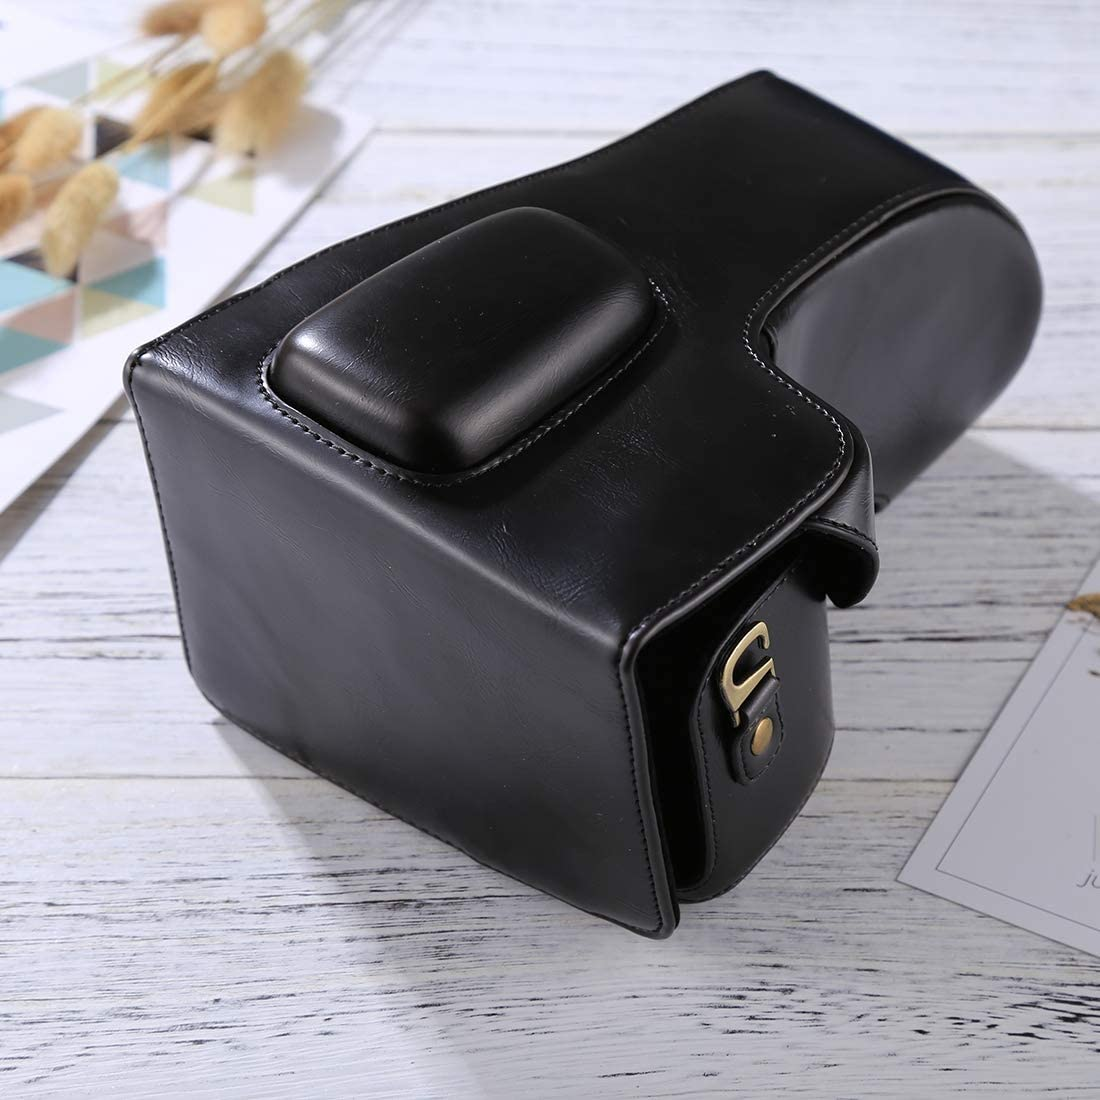 18-55mm // 18-105mm // 18-140mm Lens Color : Coffee JIN Camera Accessory Full Body Camera PU Leather Case Bag for Nikon D5300 // D5200 // D5100 Black